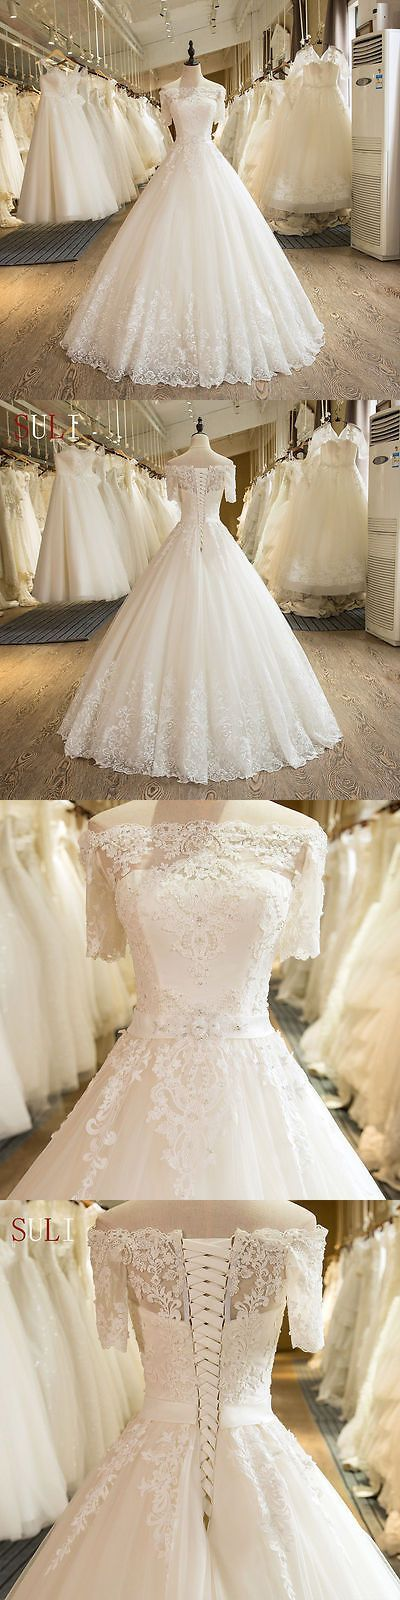 White/Ivory Wedding Dresses Lace Bridal Gown  http://www.inews-news.com/women-s-world.html#.WPRW9fkrLRY